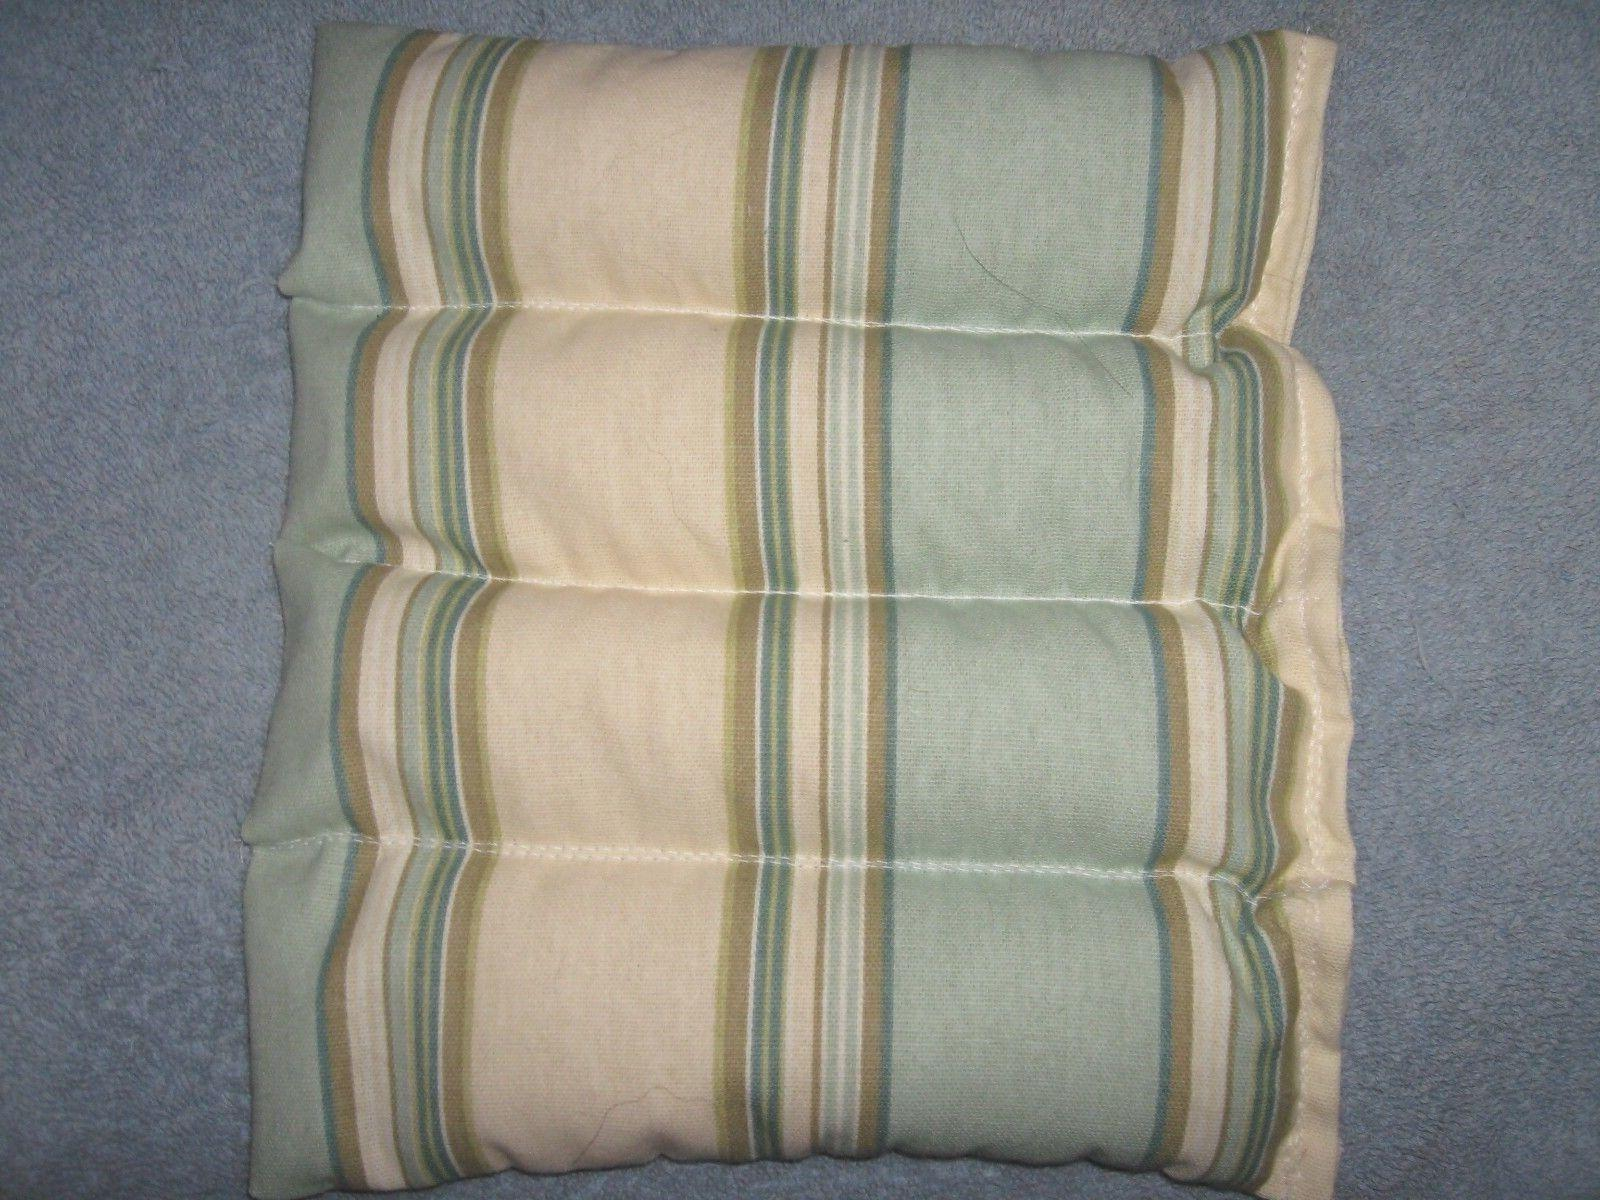 Cooling pad, heating pad SALE